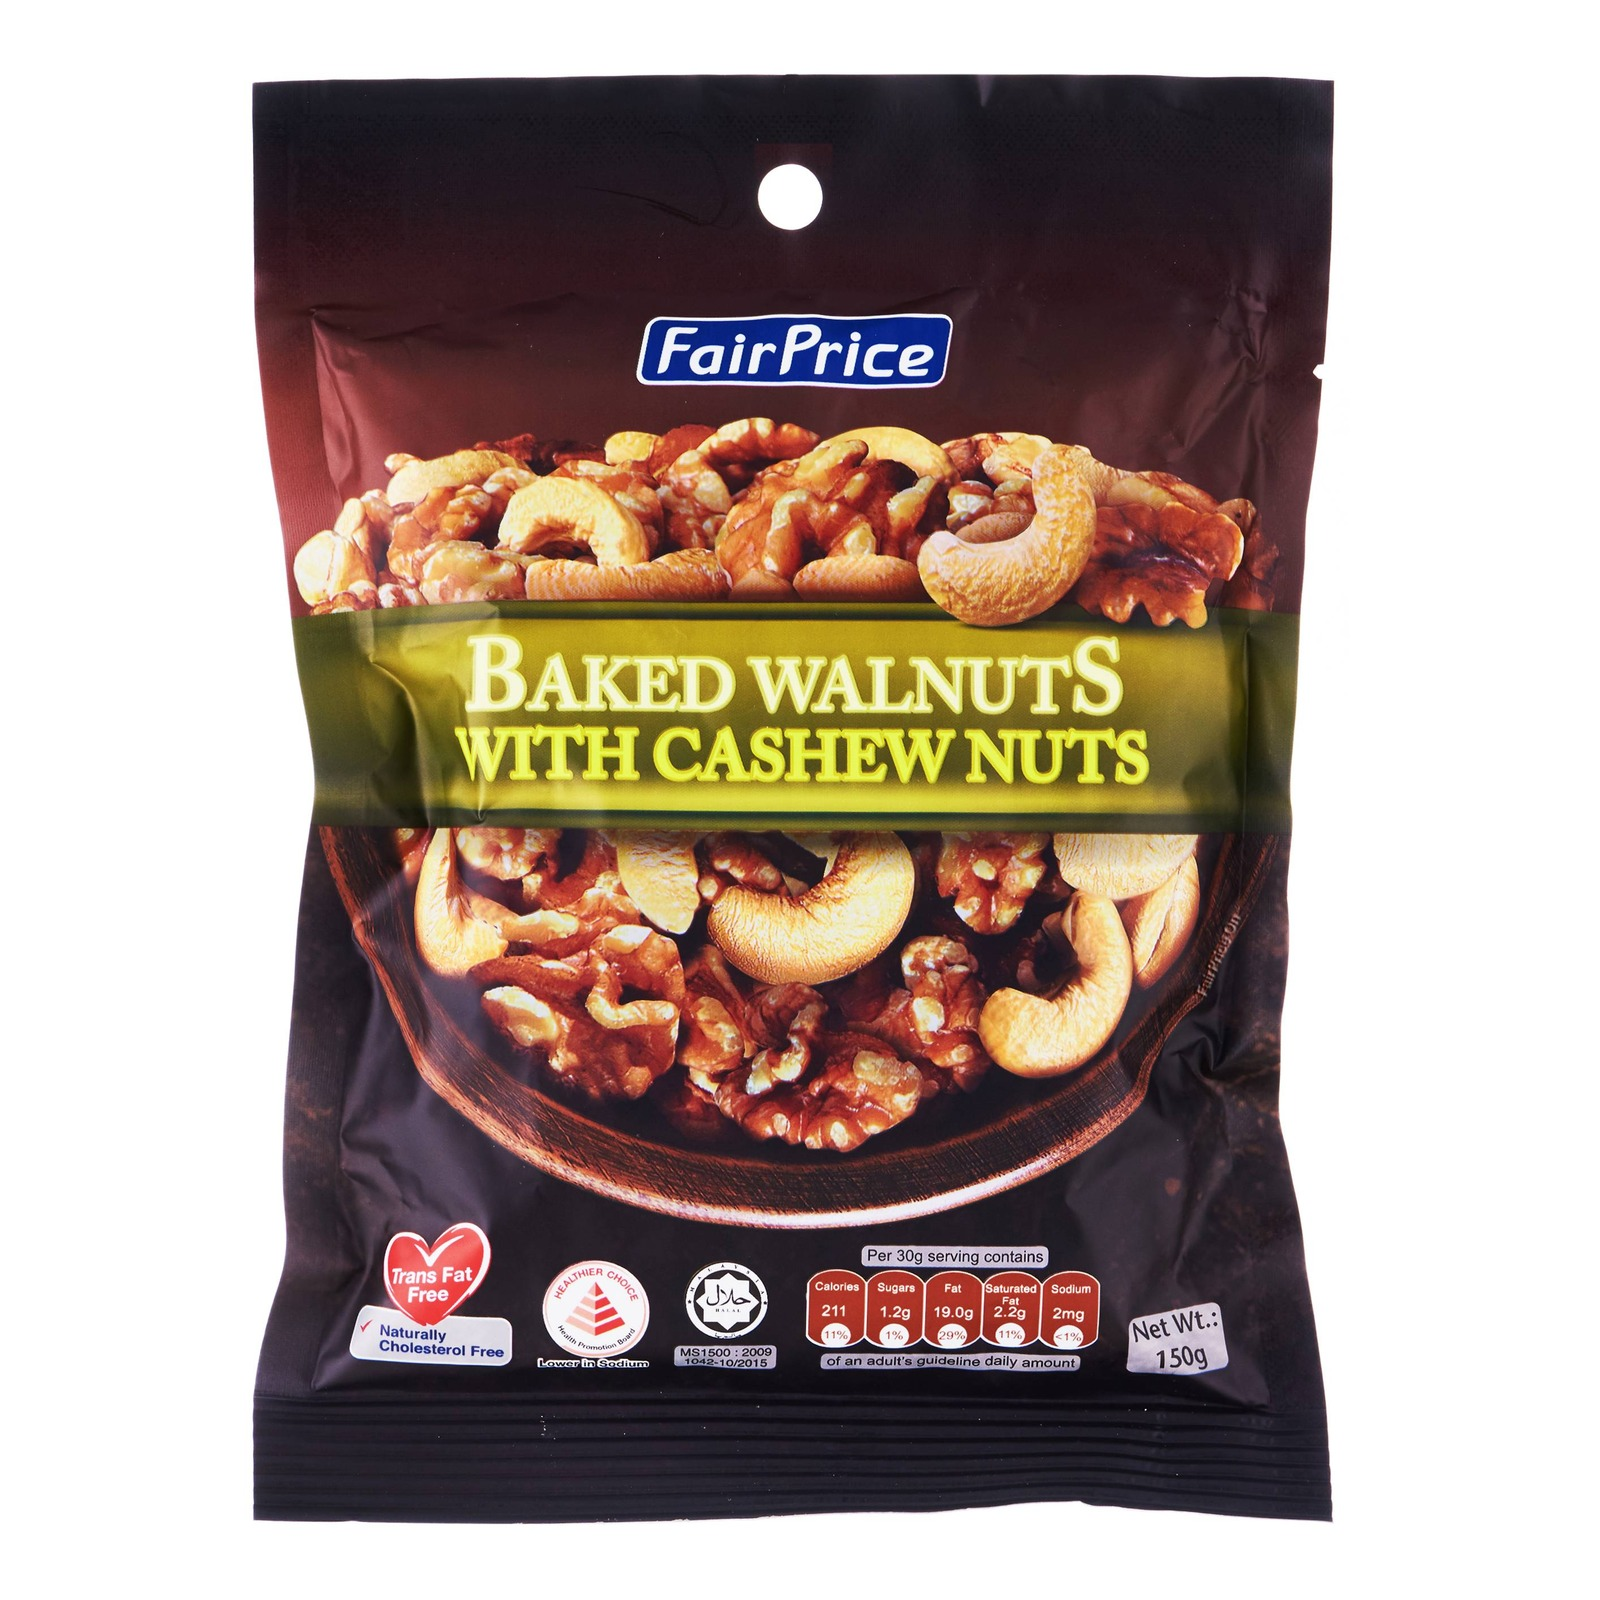 FairPrice Baked Walnuts with Cashews Nuts